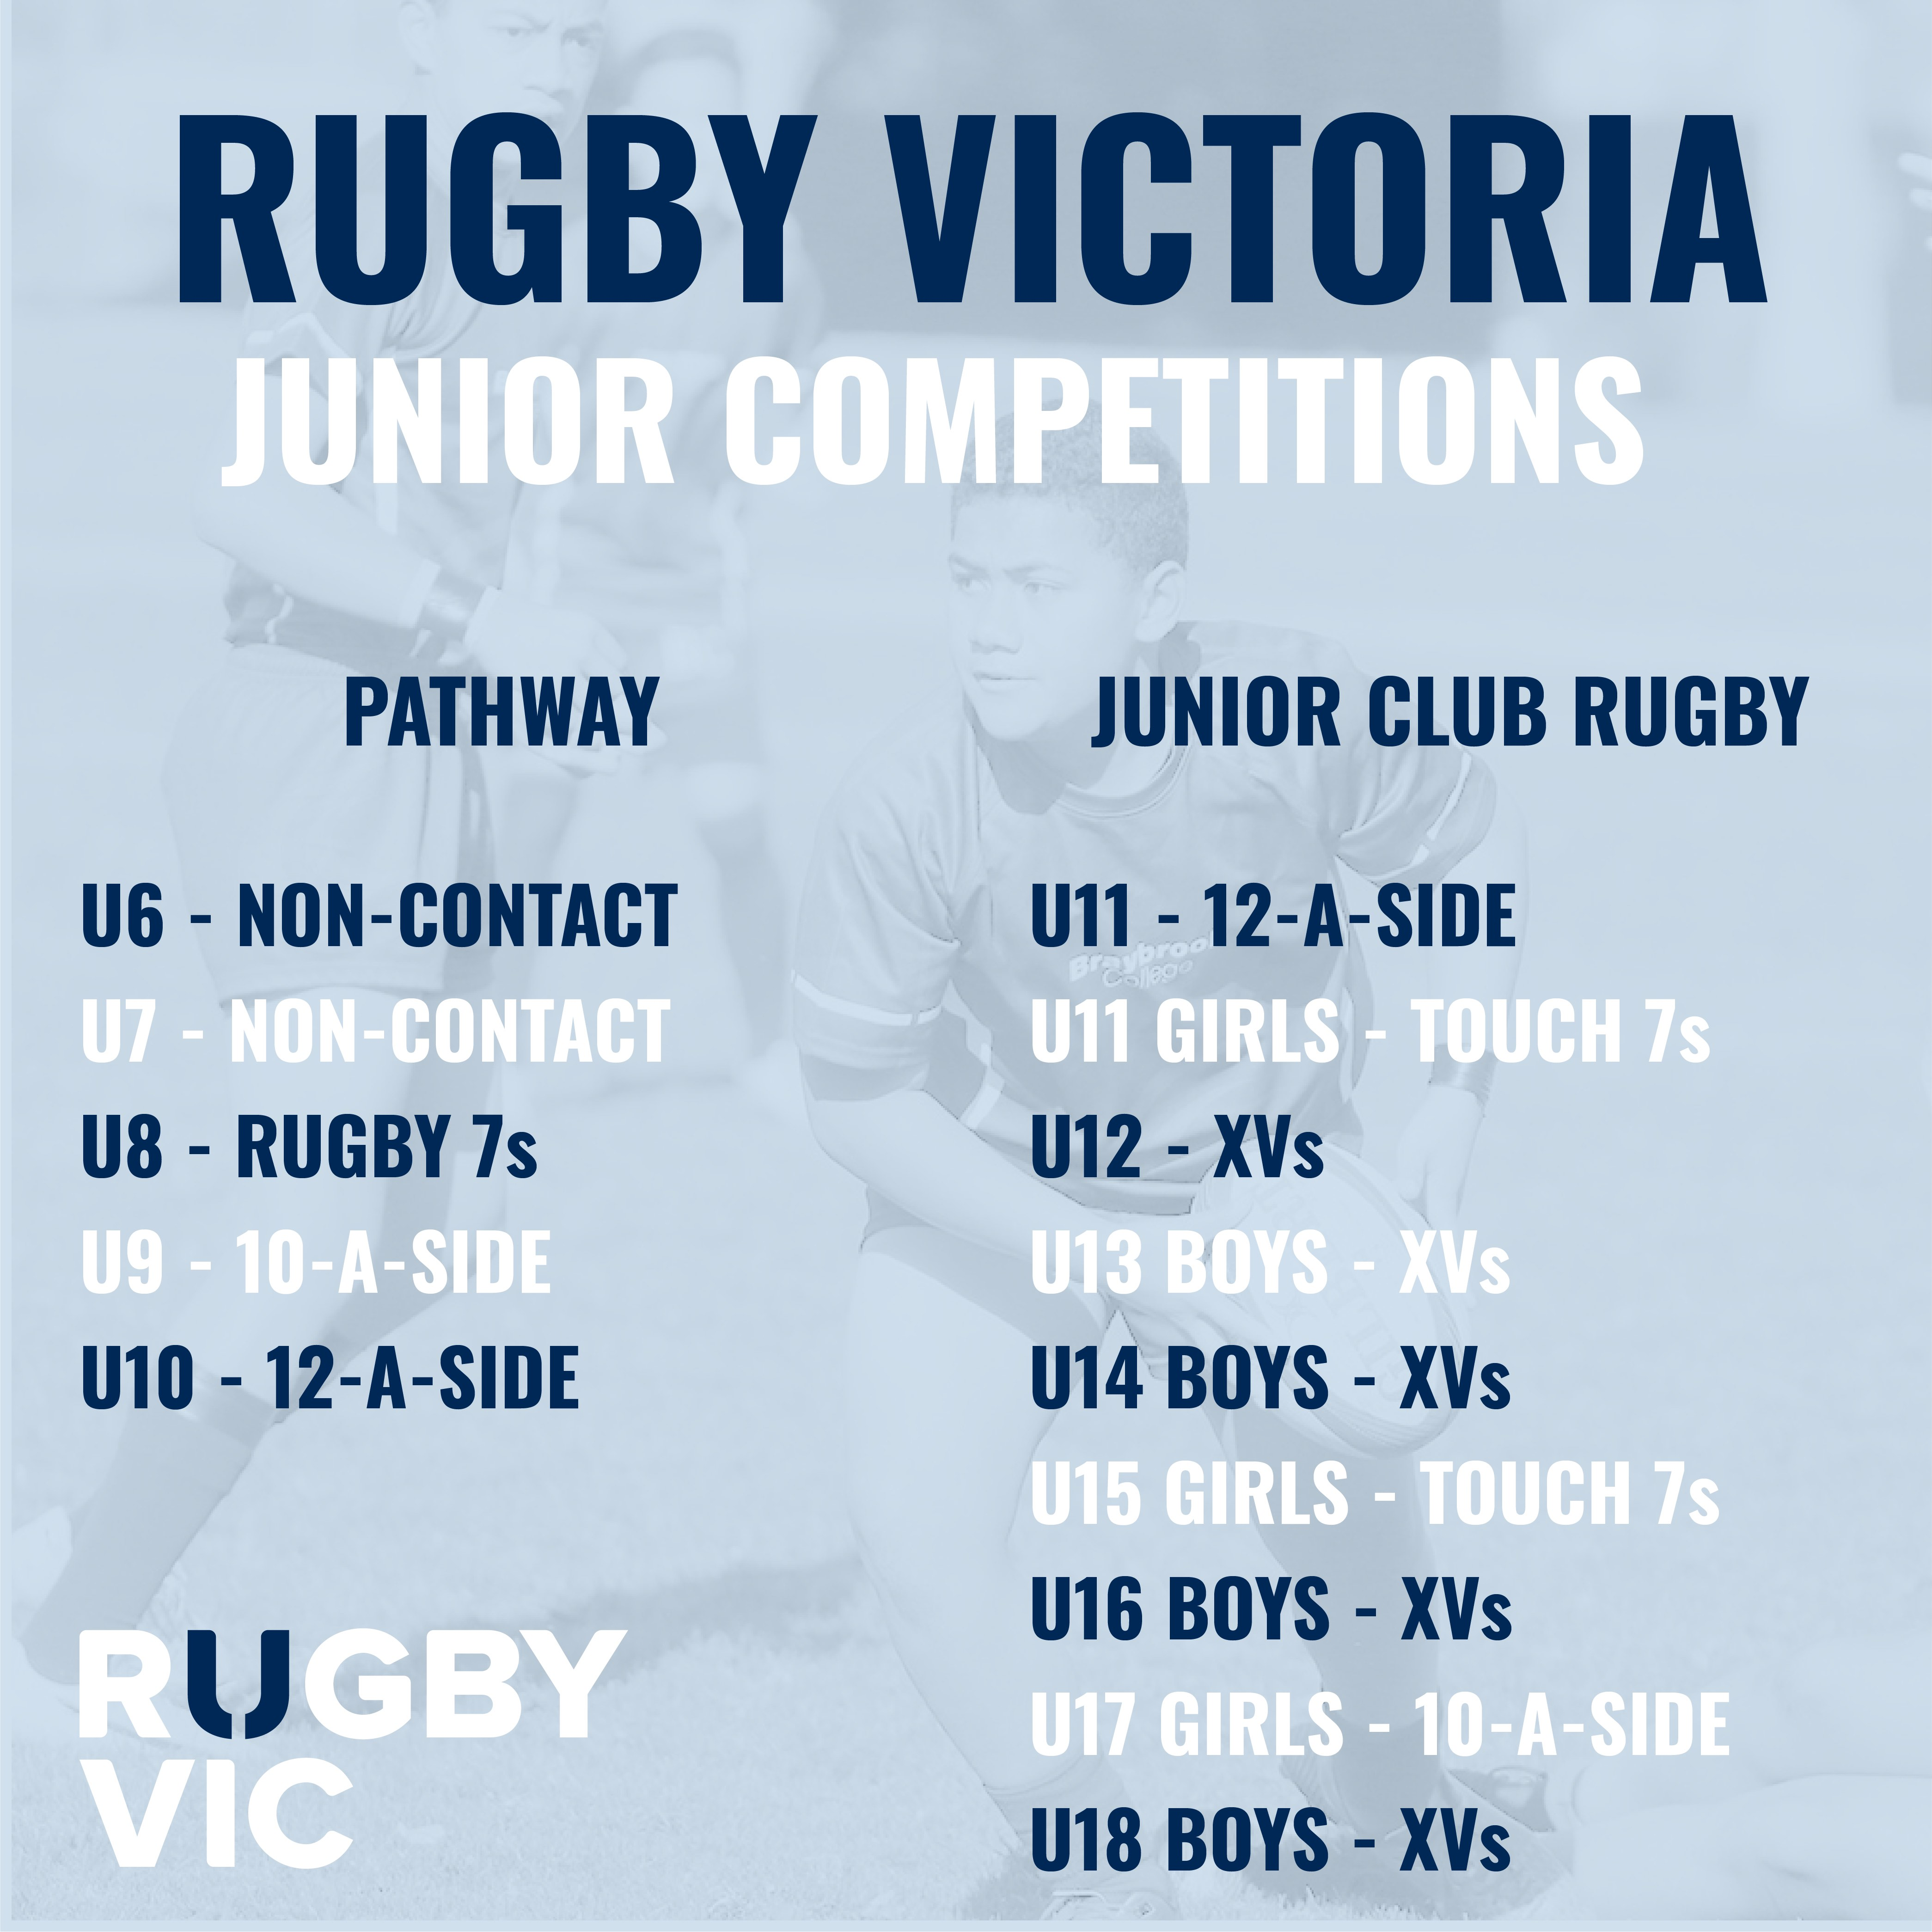 Rugby Vic Junior Competitions